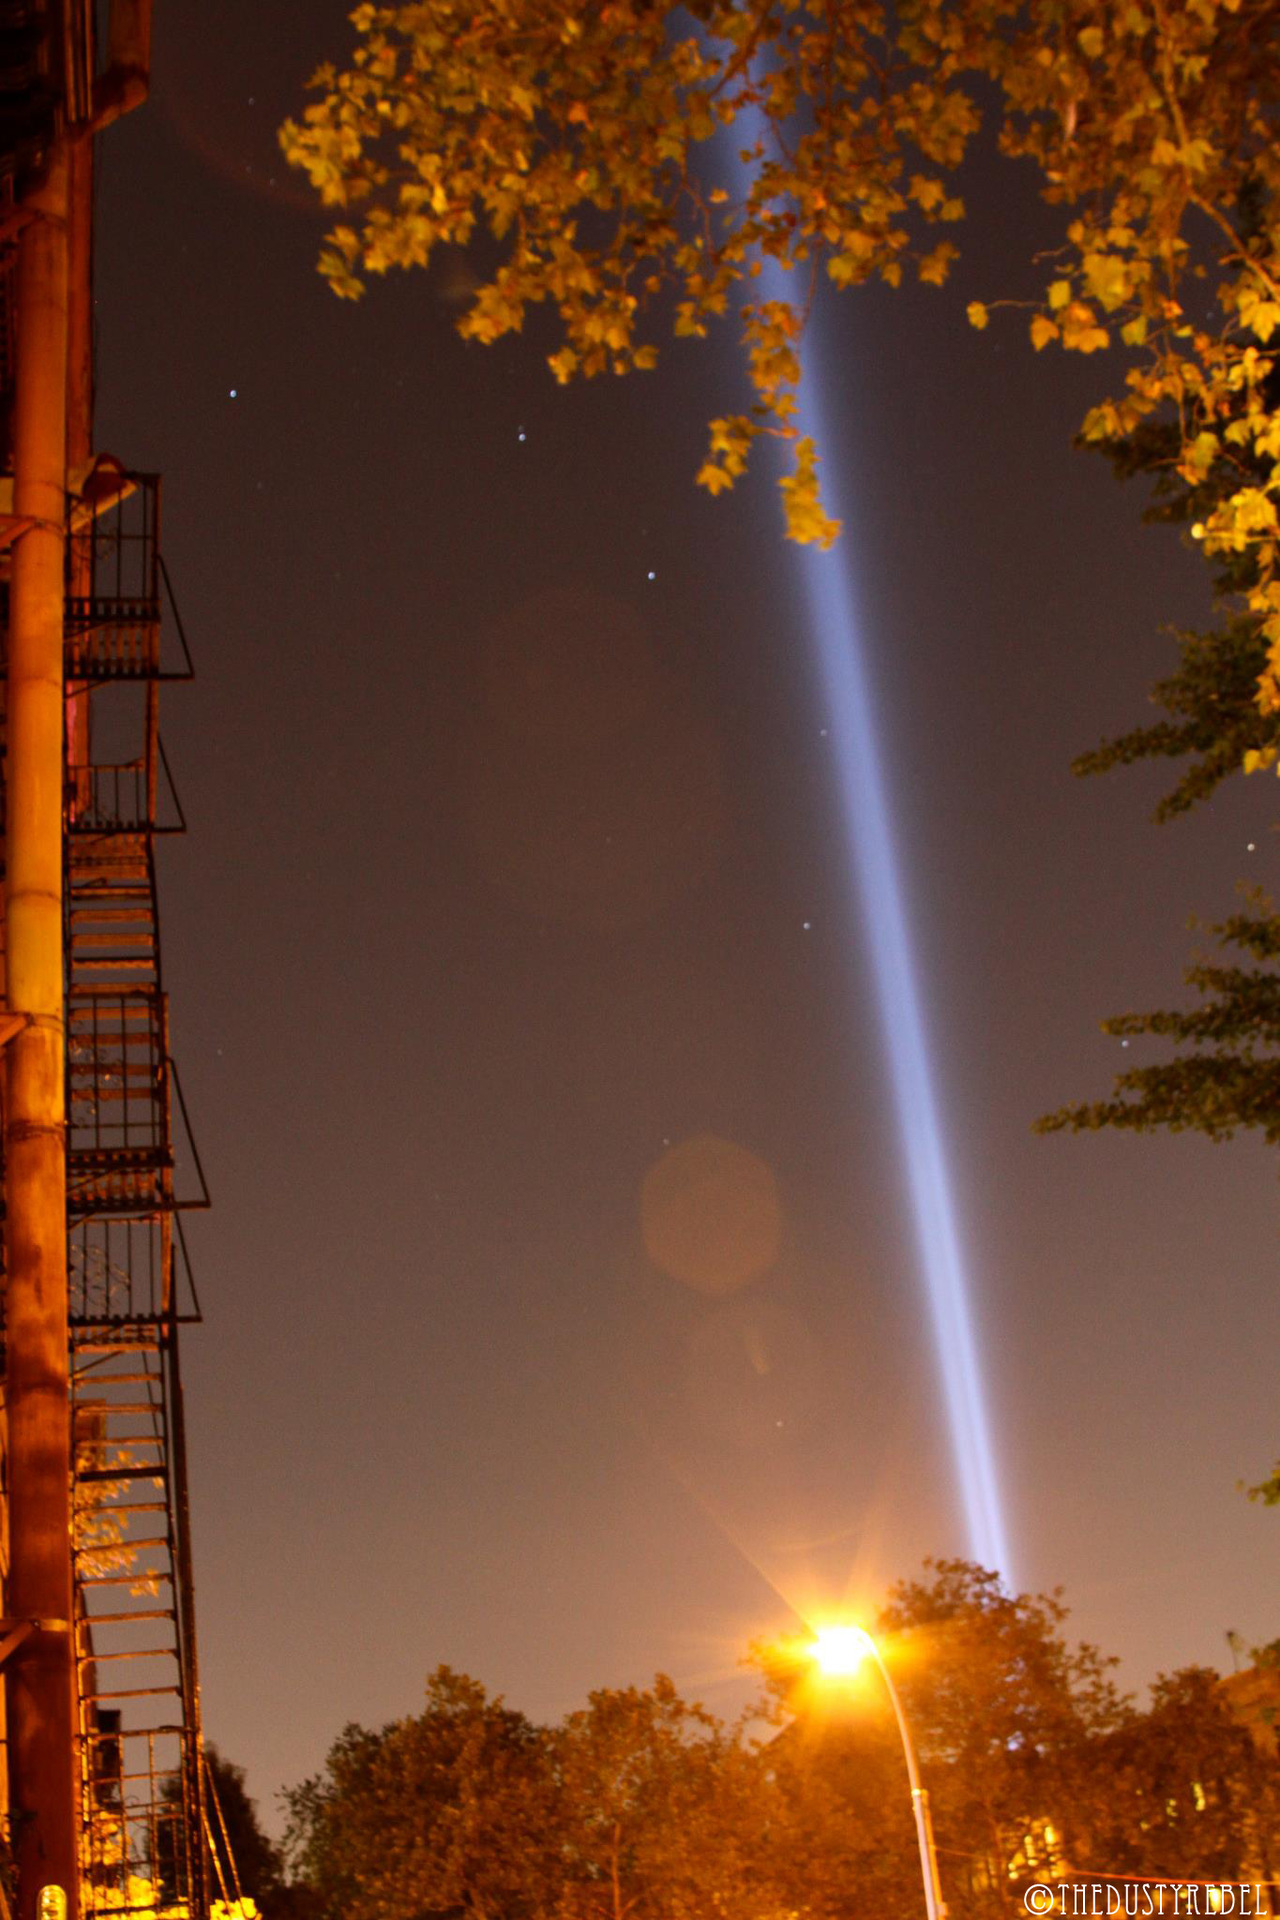 TRIBUTE IN LIGHT Every year since 2002 the Municipal Art Society of NYC  (MAS) has beamed the Tribute Lights into the sky on September 11th. The lights reach 4 miles into the sky, echoing the shape and orientation of the Twin Towers. They say it's the strongest shaft of light ever projected from earth into the night sky. Tribute in Lights was designed by John Bennett, Gustavo Bonevardi, Richard Nash Gould, Julian Laverdiere and Paul Myoda with lighting consultant Paul Marantz; all brought together by MAS & Creative Time.  Here they are, shot shining through the The Big Dipper. Photographer, TheDustyRebel. thedustyrebel:  Tribute in Light & The Big Dipper Park Slope, Brooklyn